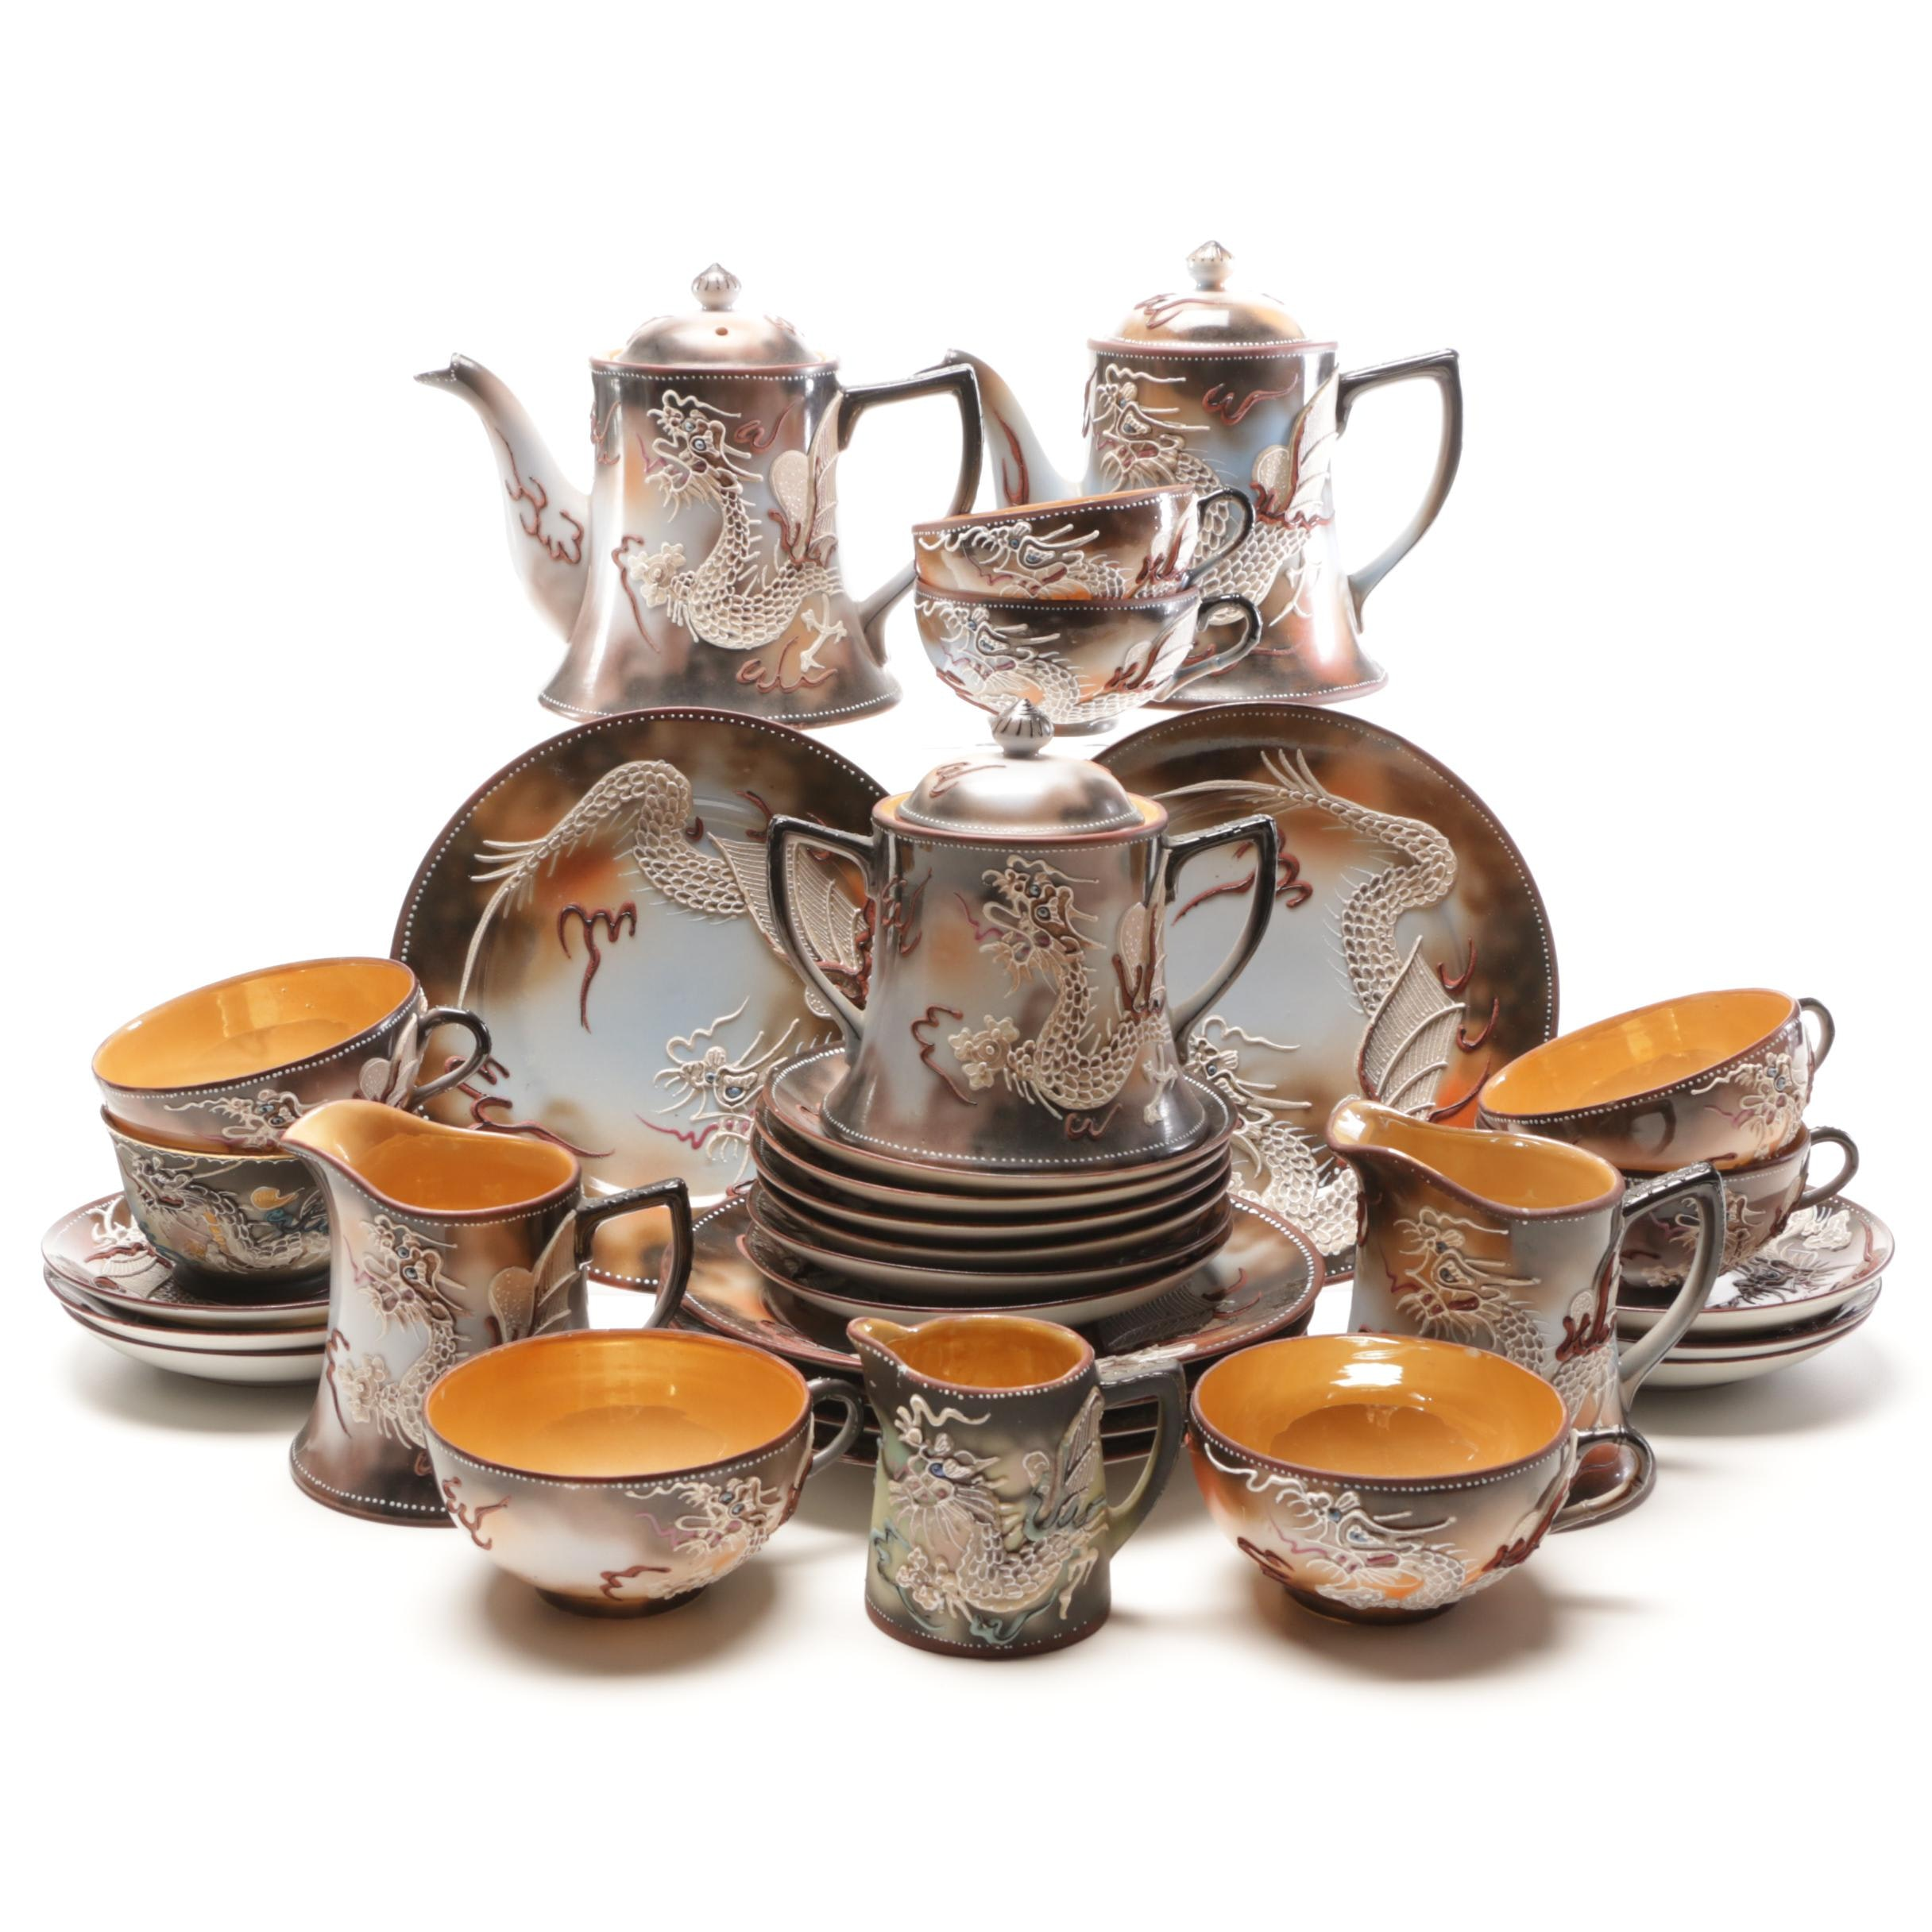 Takito Japanese Moriage Dragonware Porcelain Tea Set